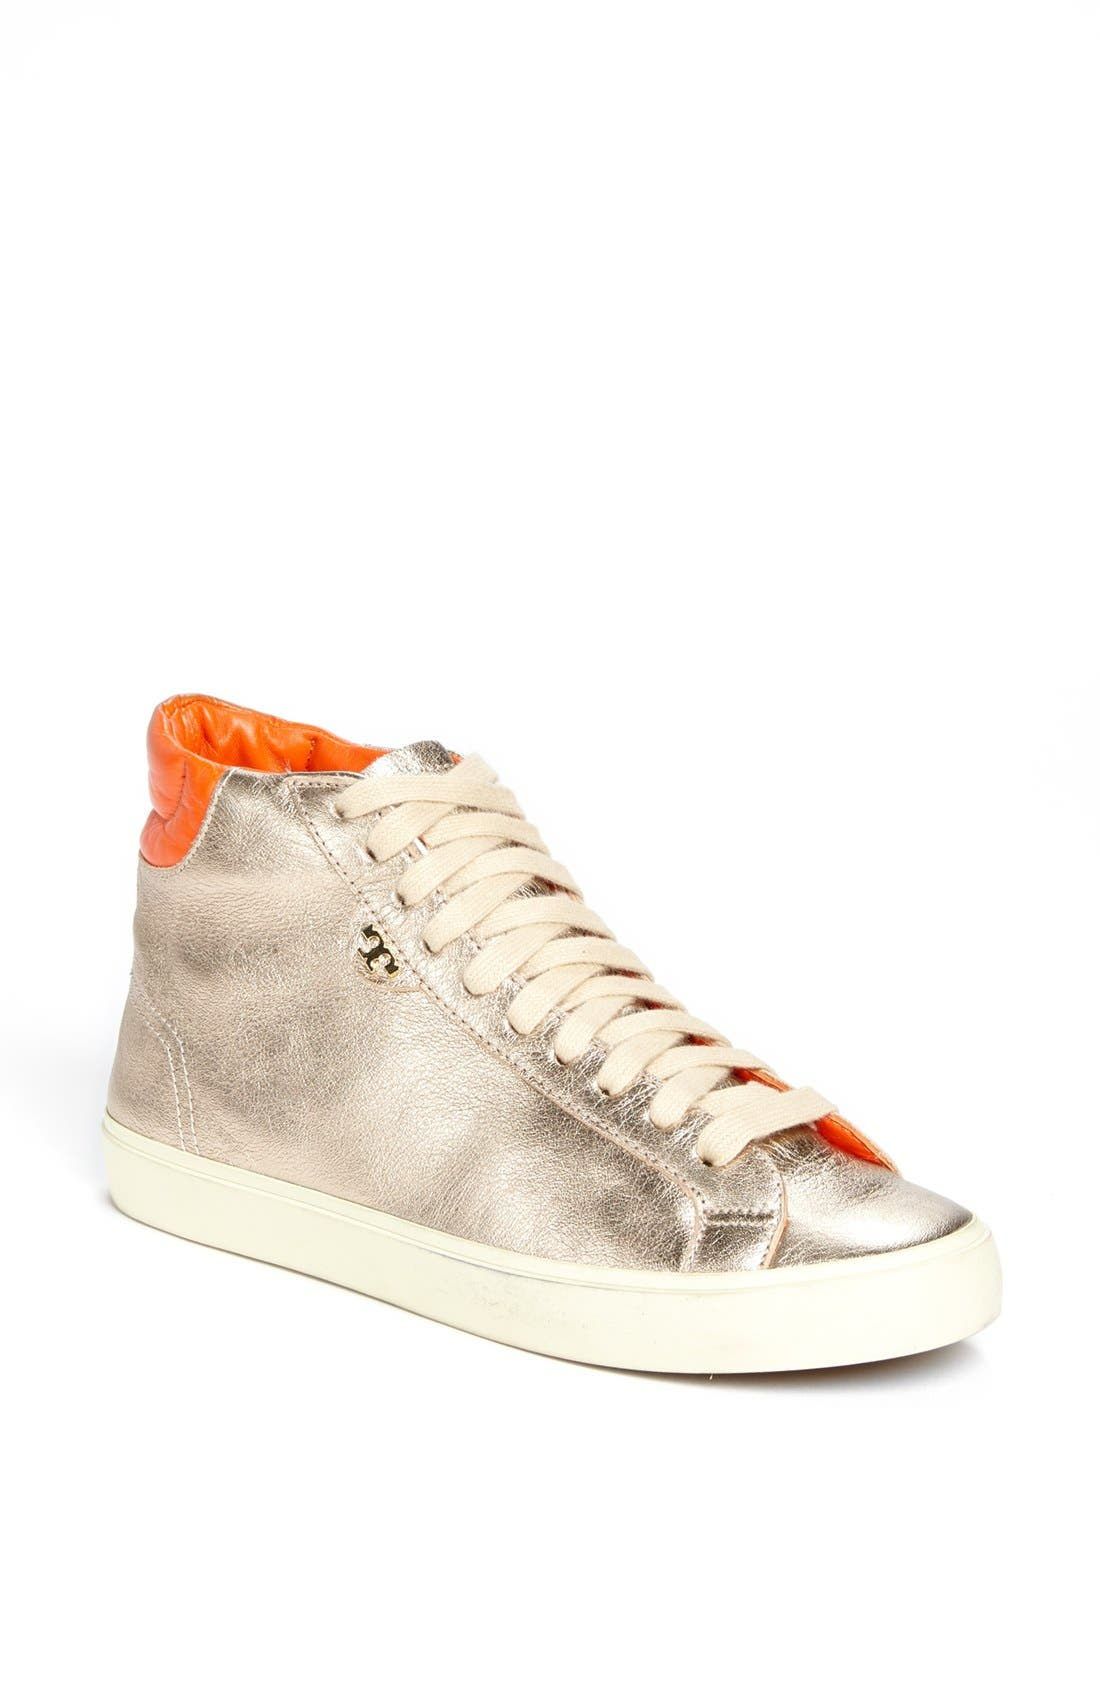 Alternate Image 1 Selected - Tory Burch 'Caleb' High Top Leather Sneaker